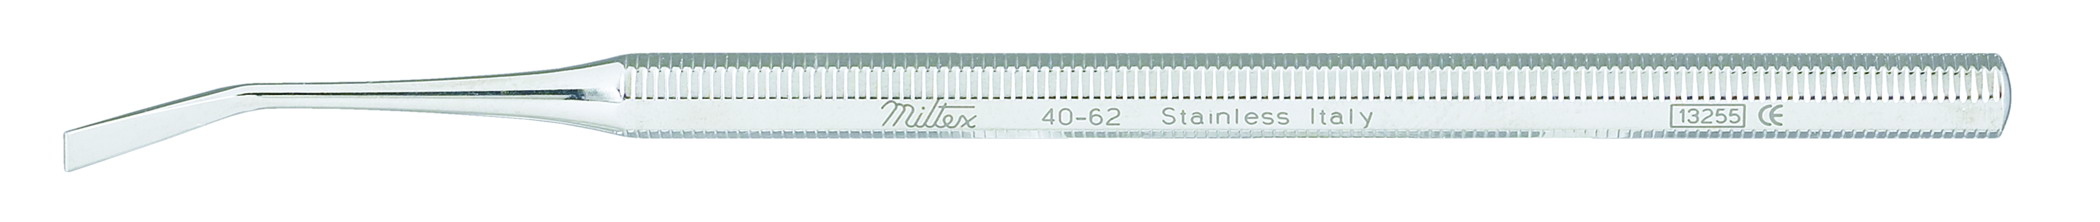 nail-splitter-angled-35-mm-wide-40-62-miltex.jpg